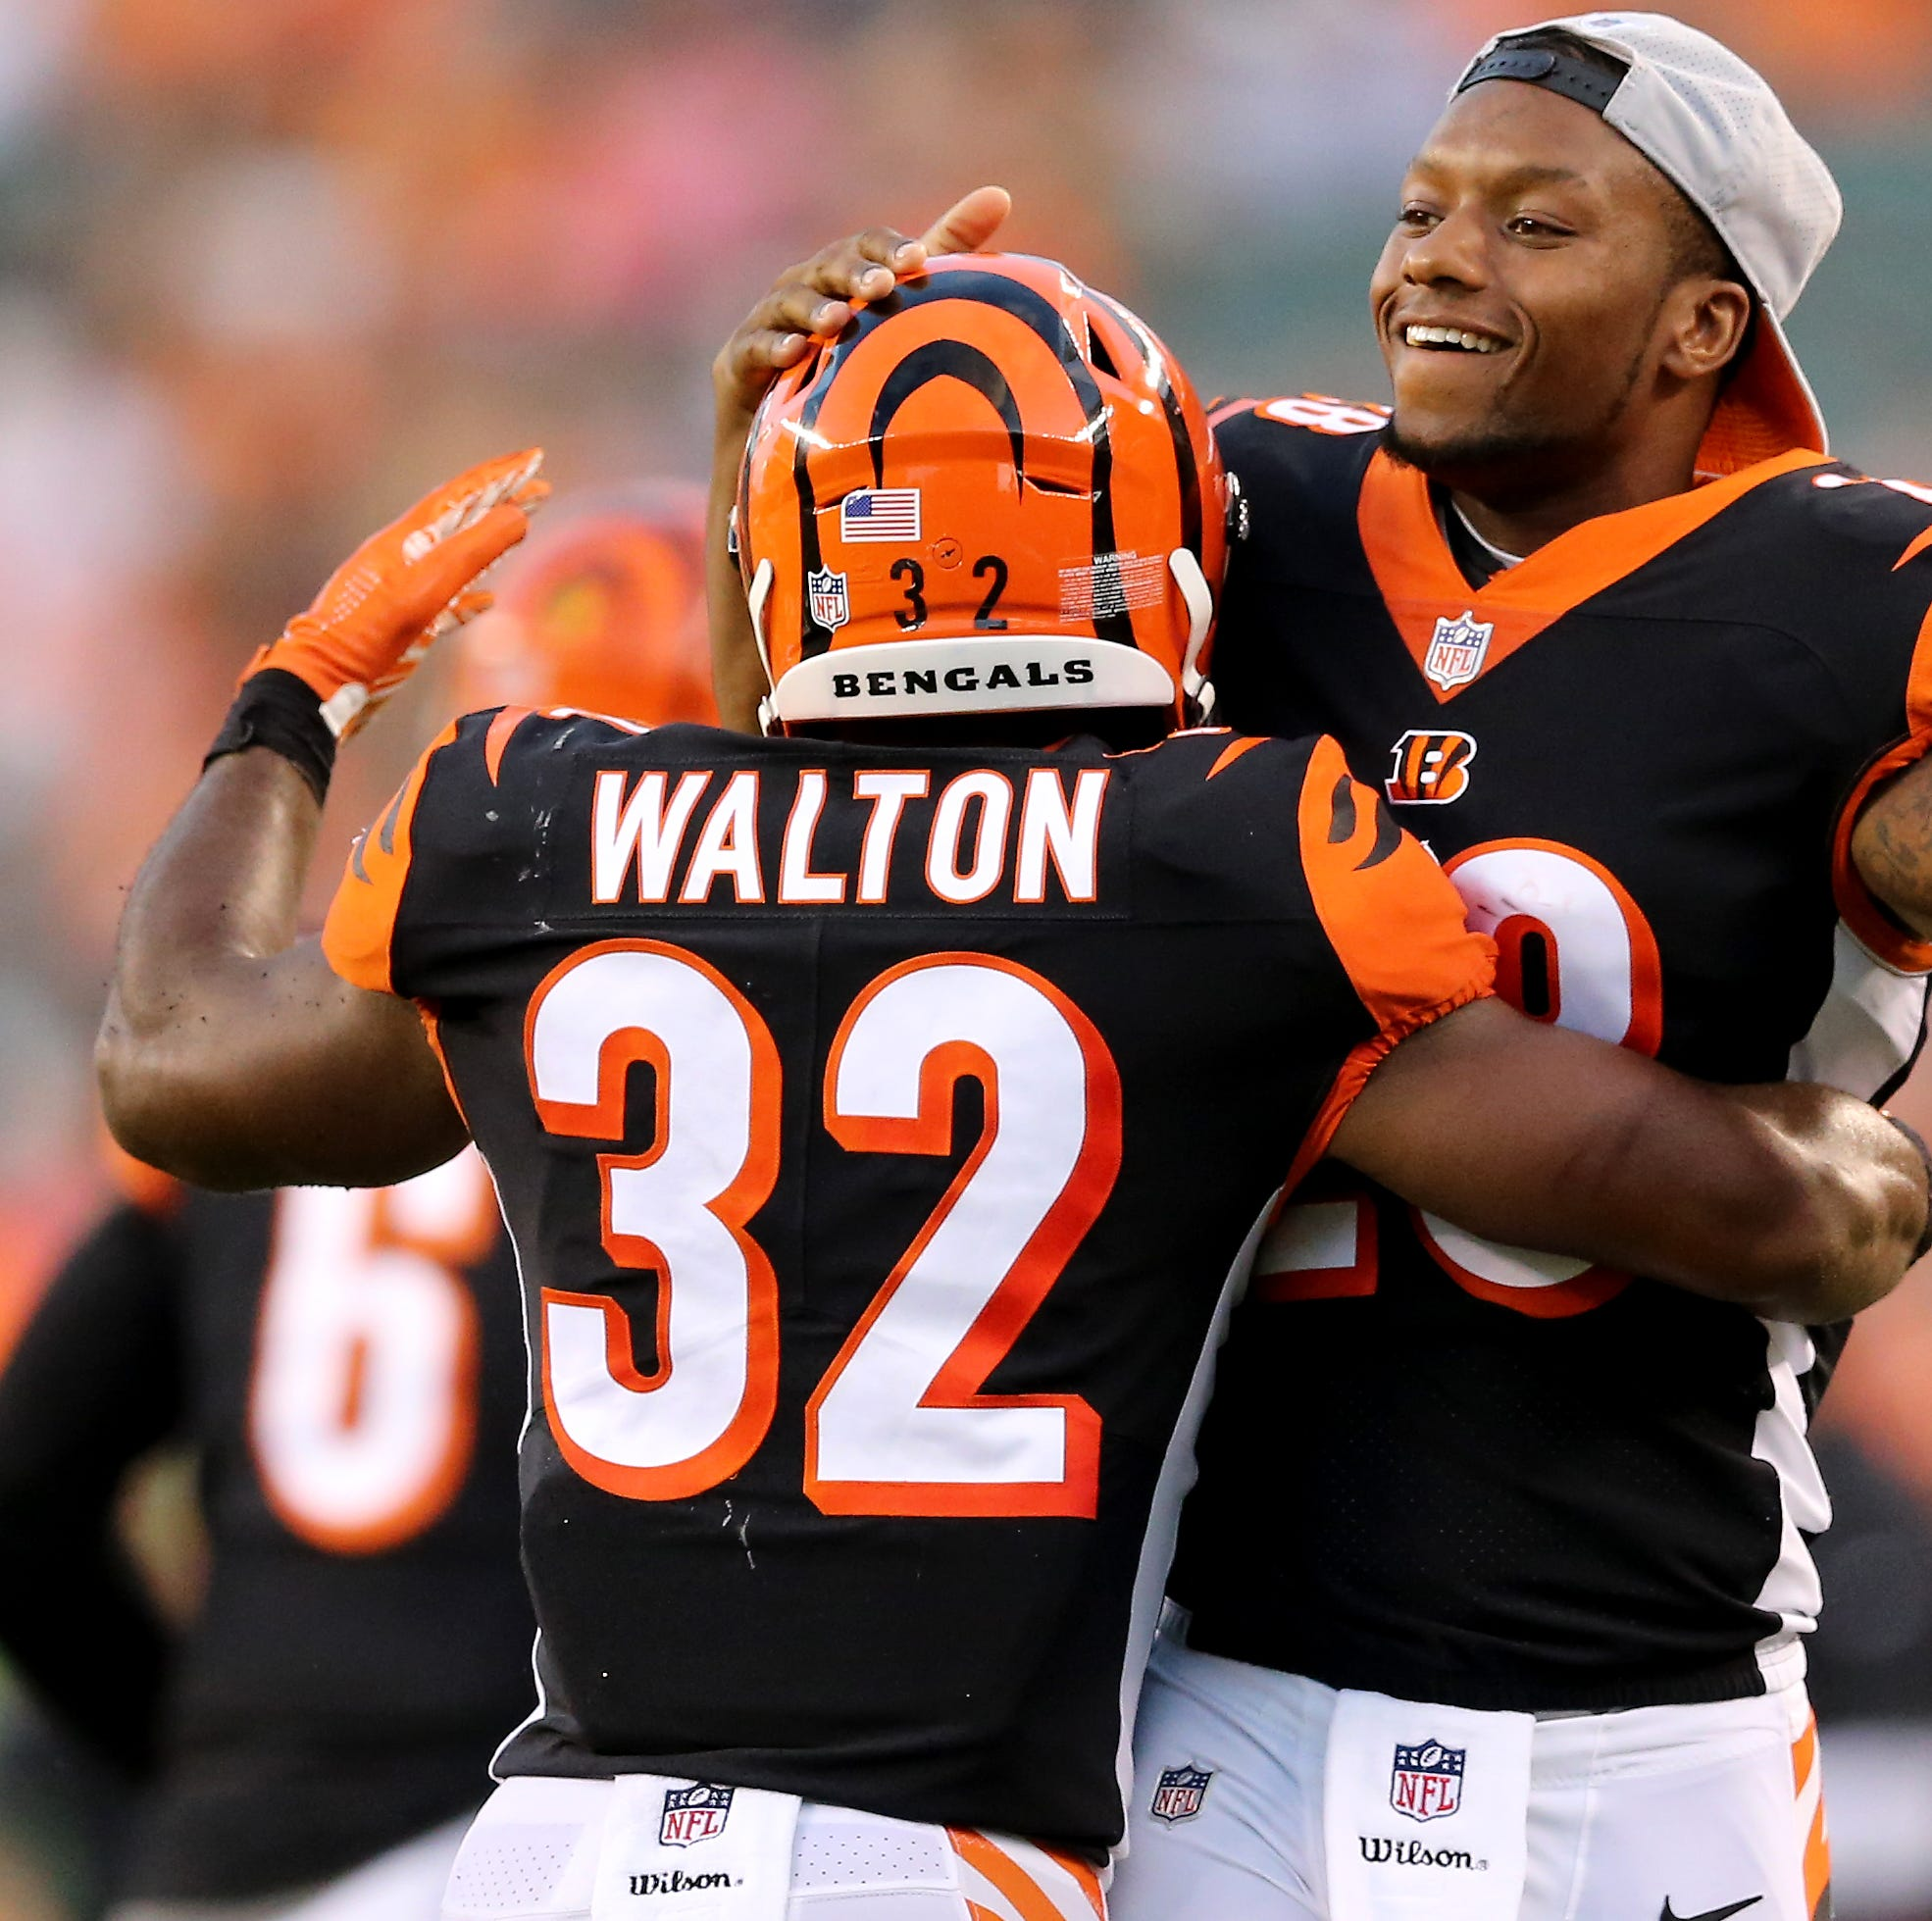 Live updates: Cincinnati Bengals lead Carolina Panthers 7-0